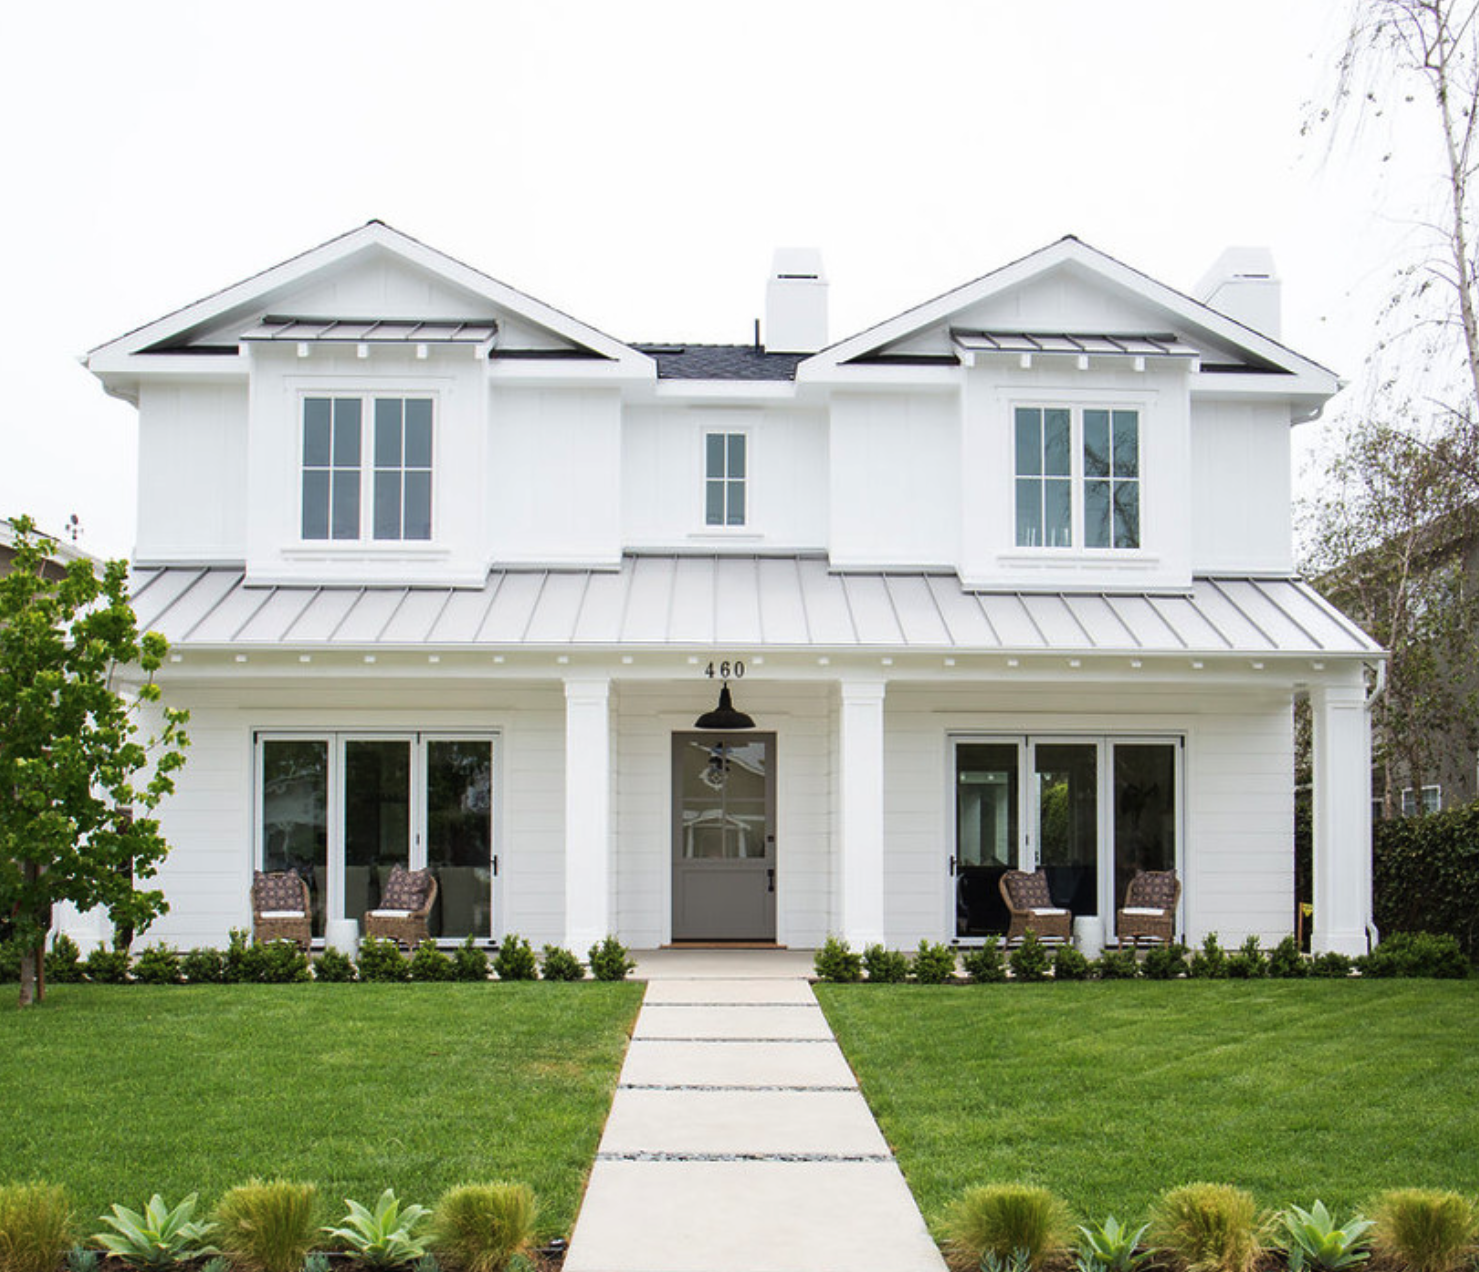 ATG&D Dream Home  Exterior Inspiration - All Things G&D